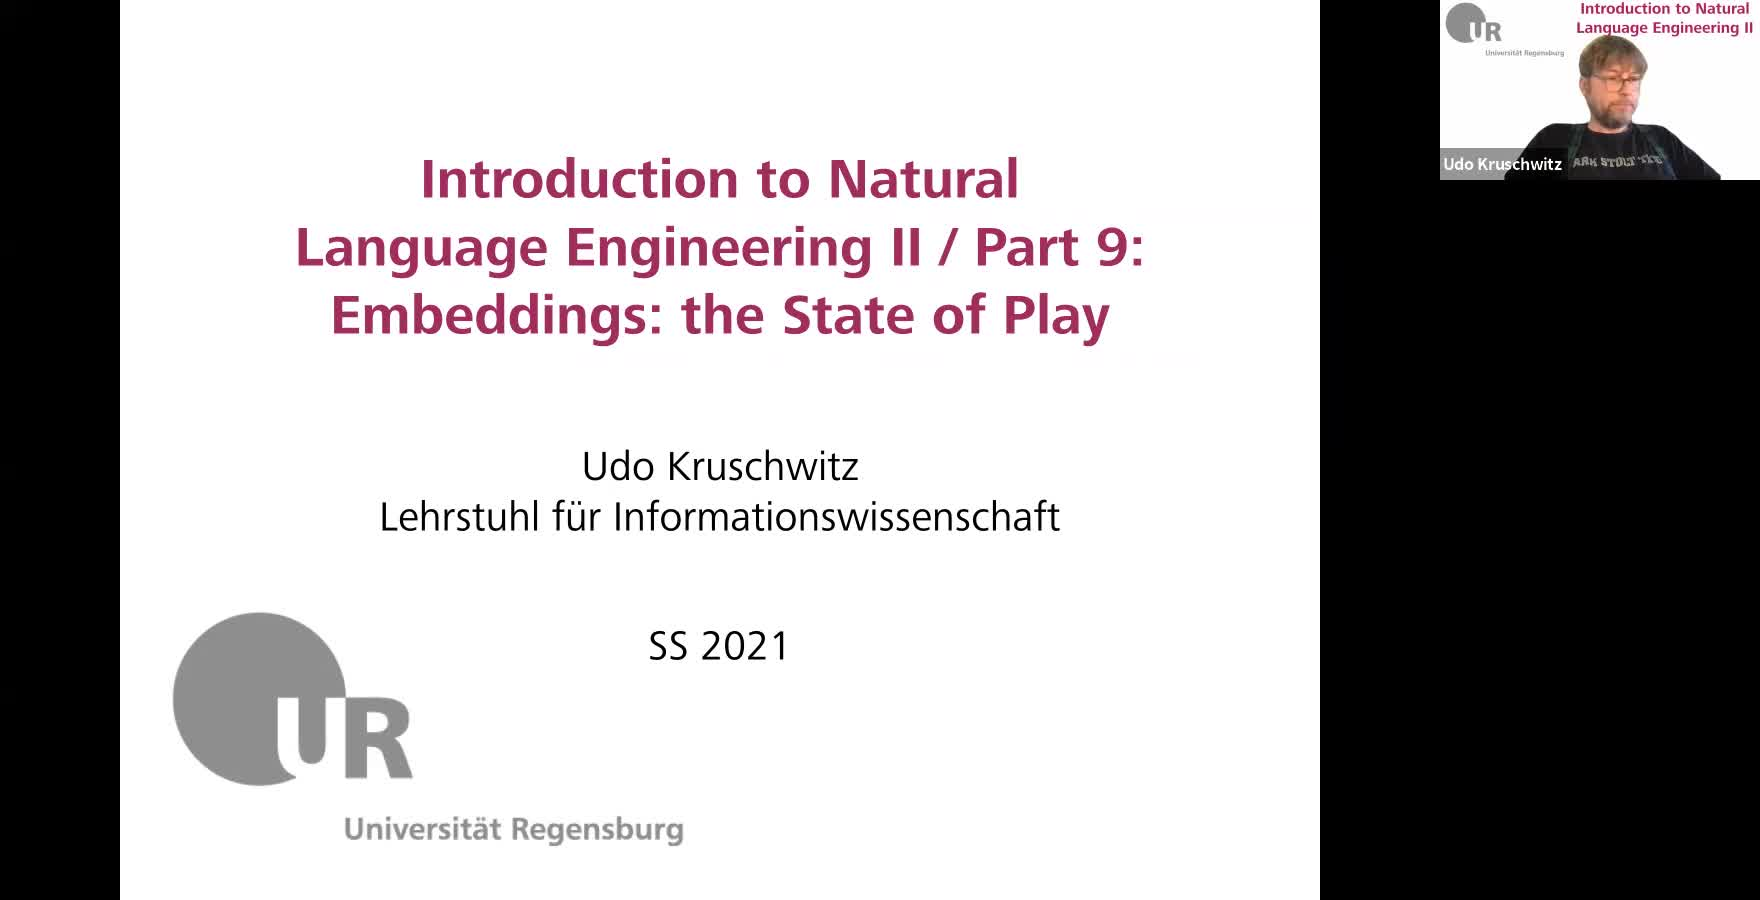 Introduction to Natural Language Engineering 2 / Informationslinguistik 2 - Lecture 11 (Embeddings: the State of Play)